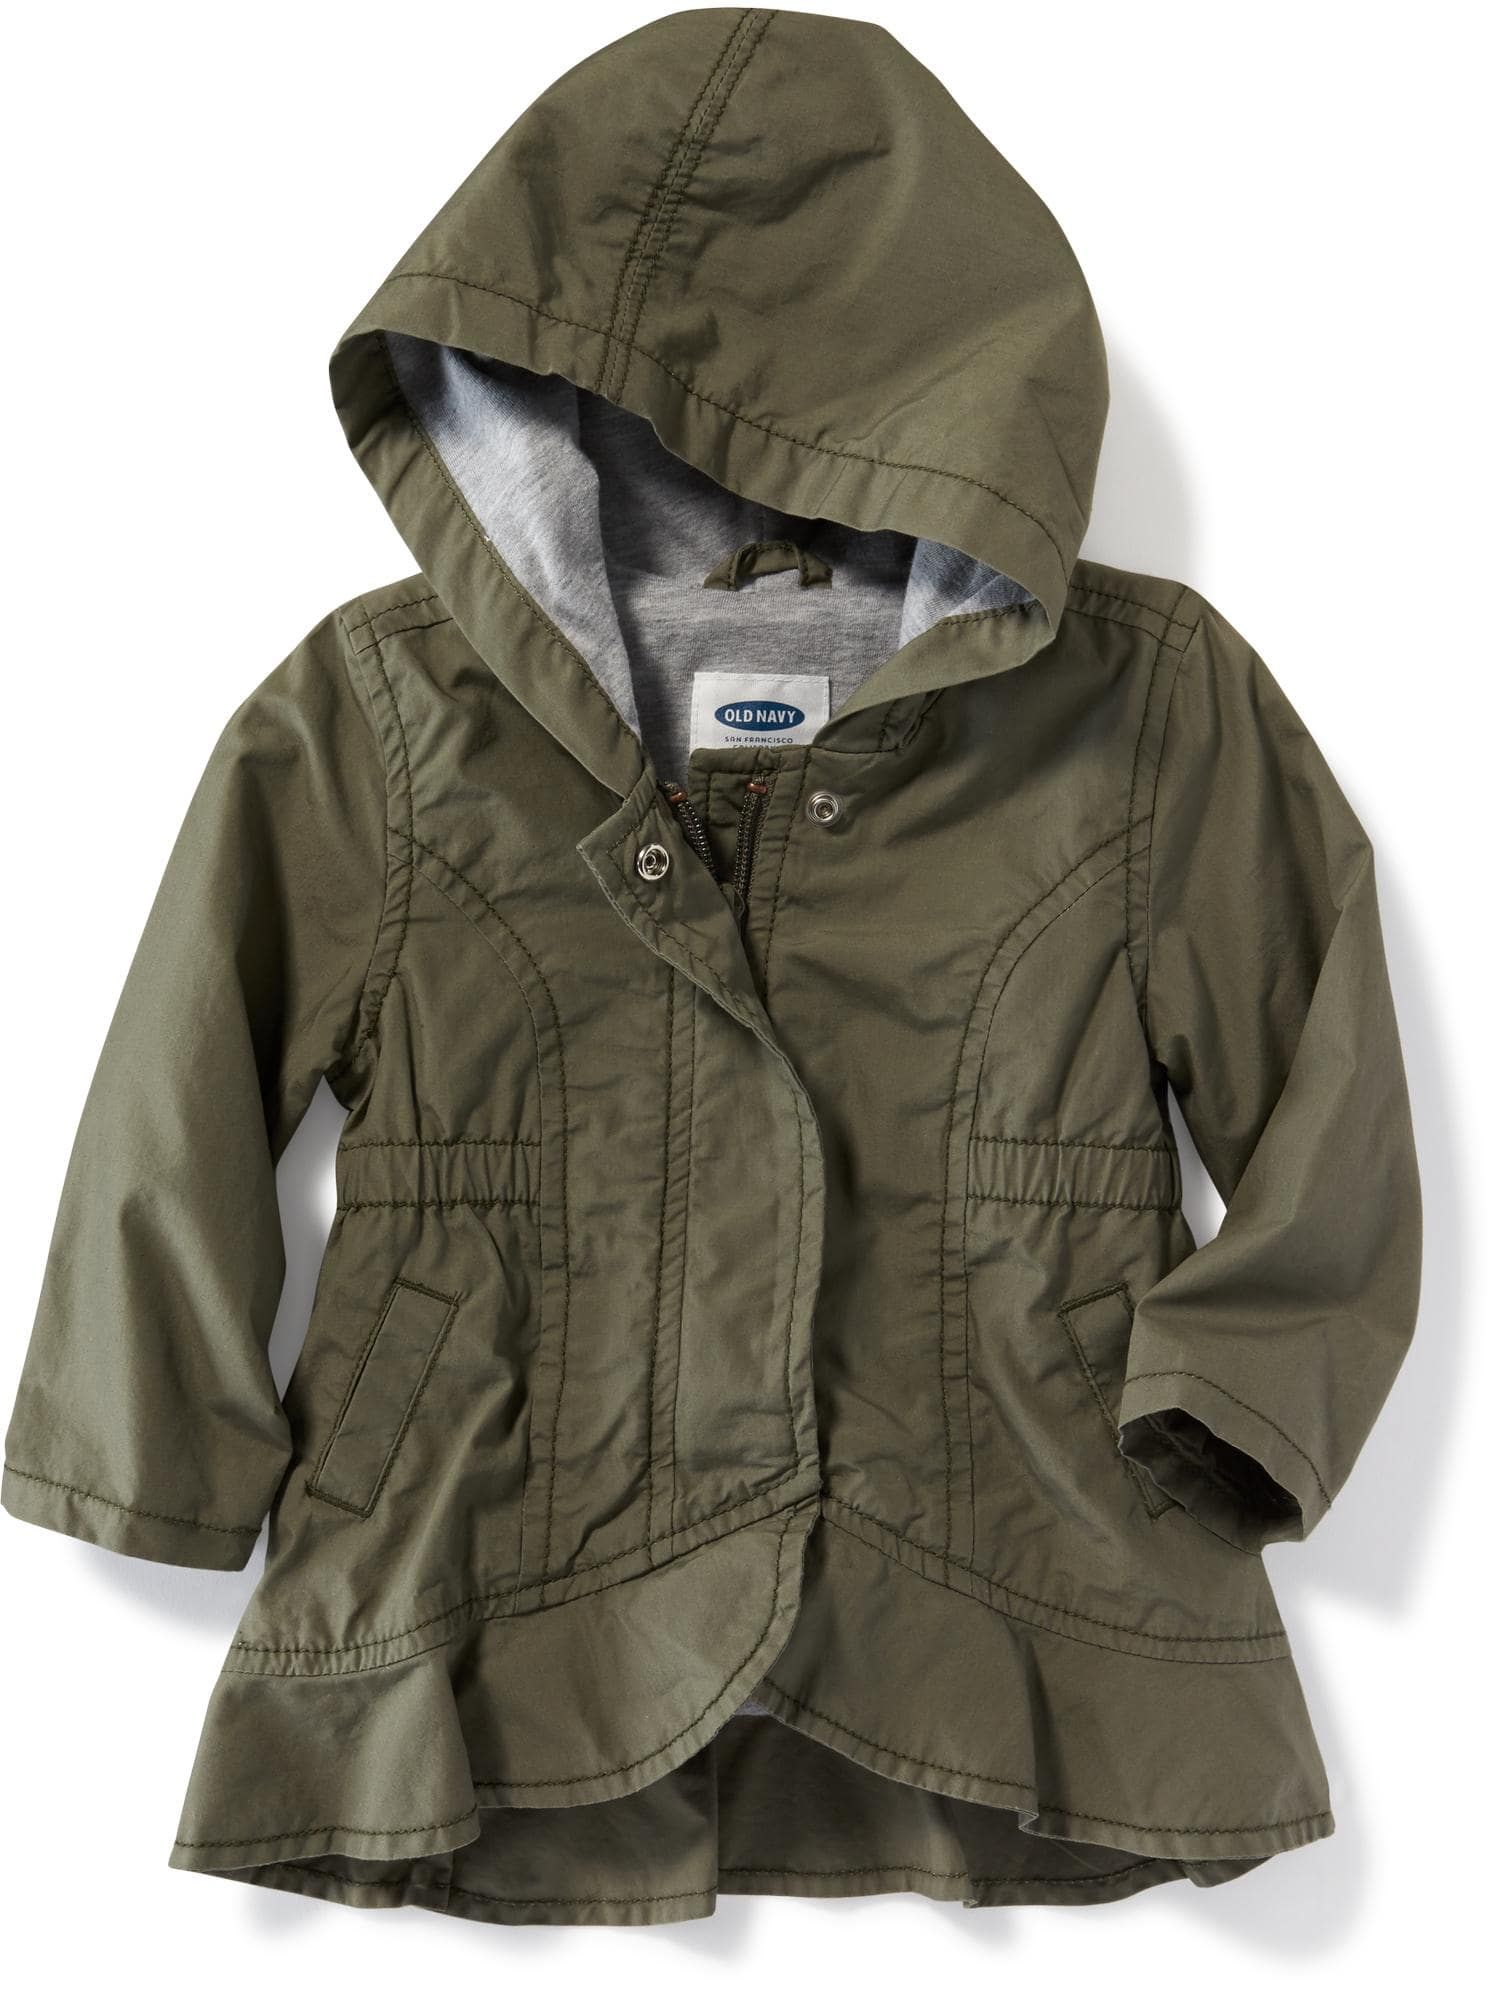 Hooded Peplum Hem Utility Jacket for Baby Old Navy